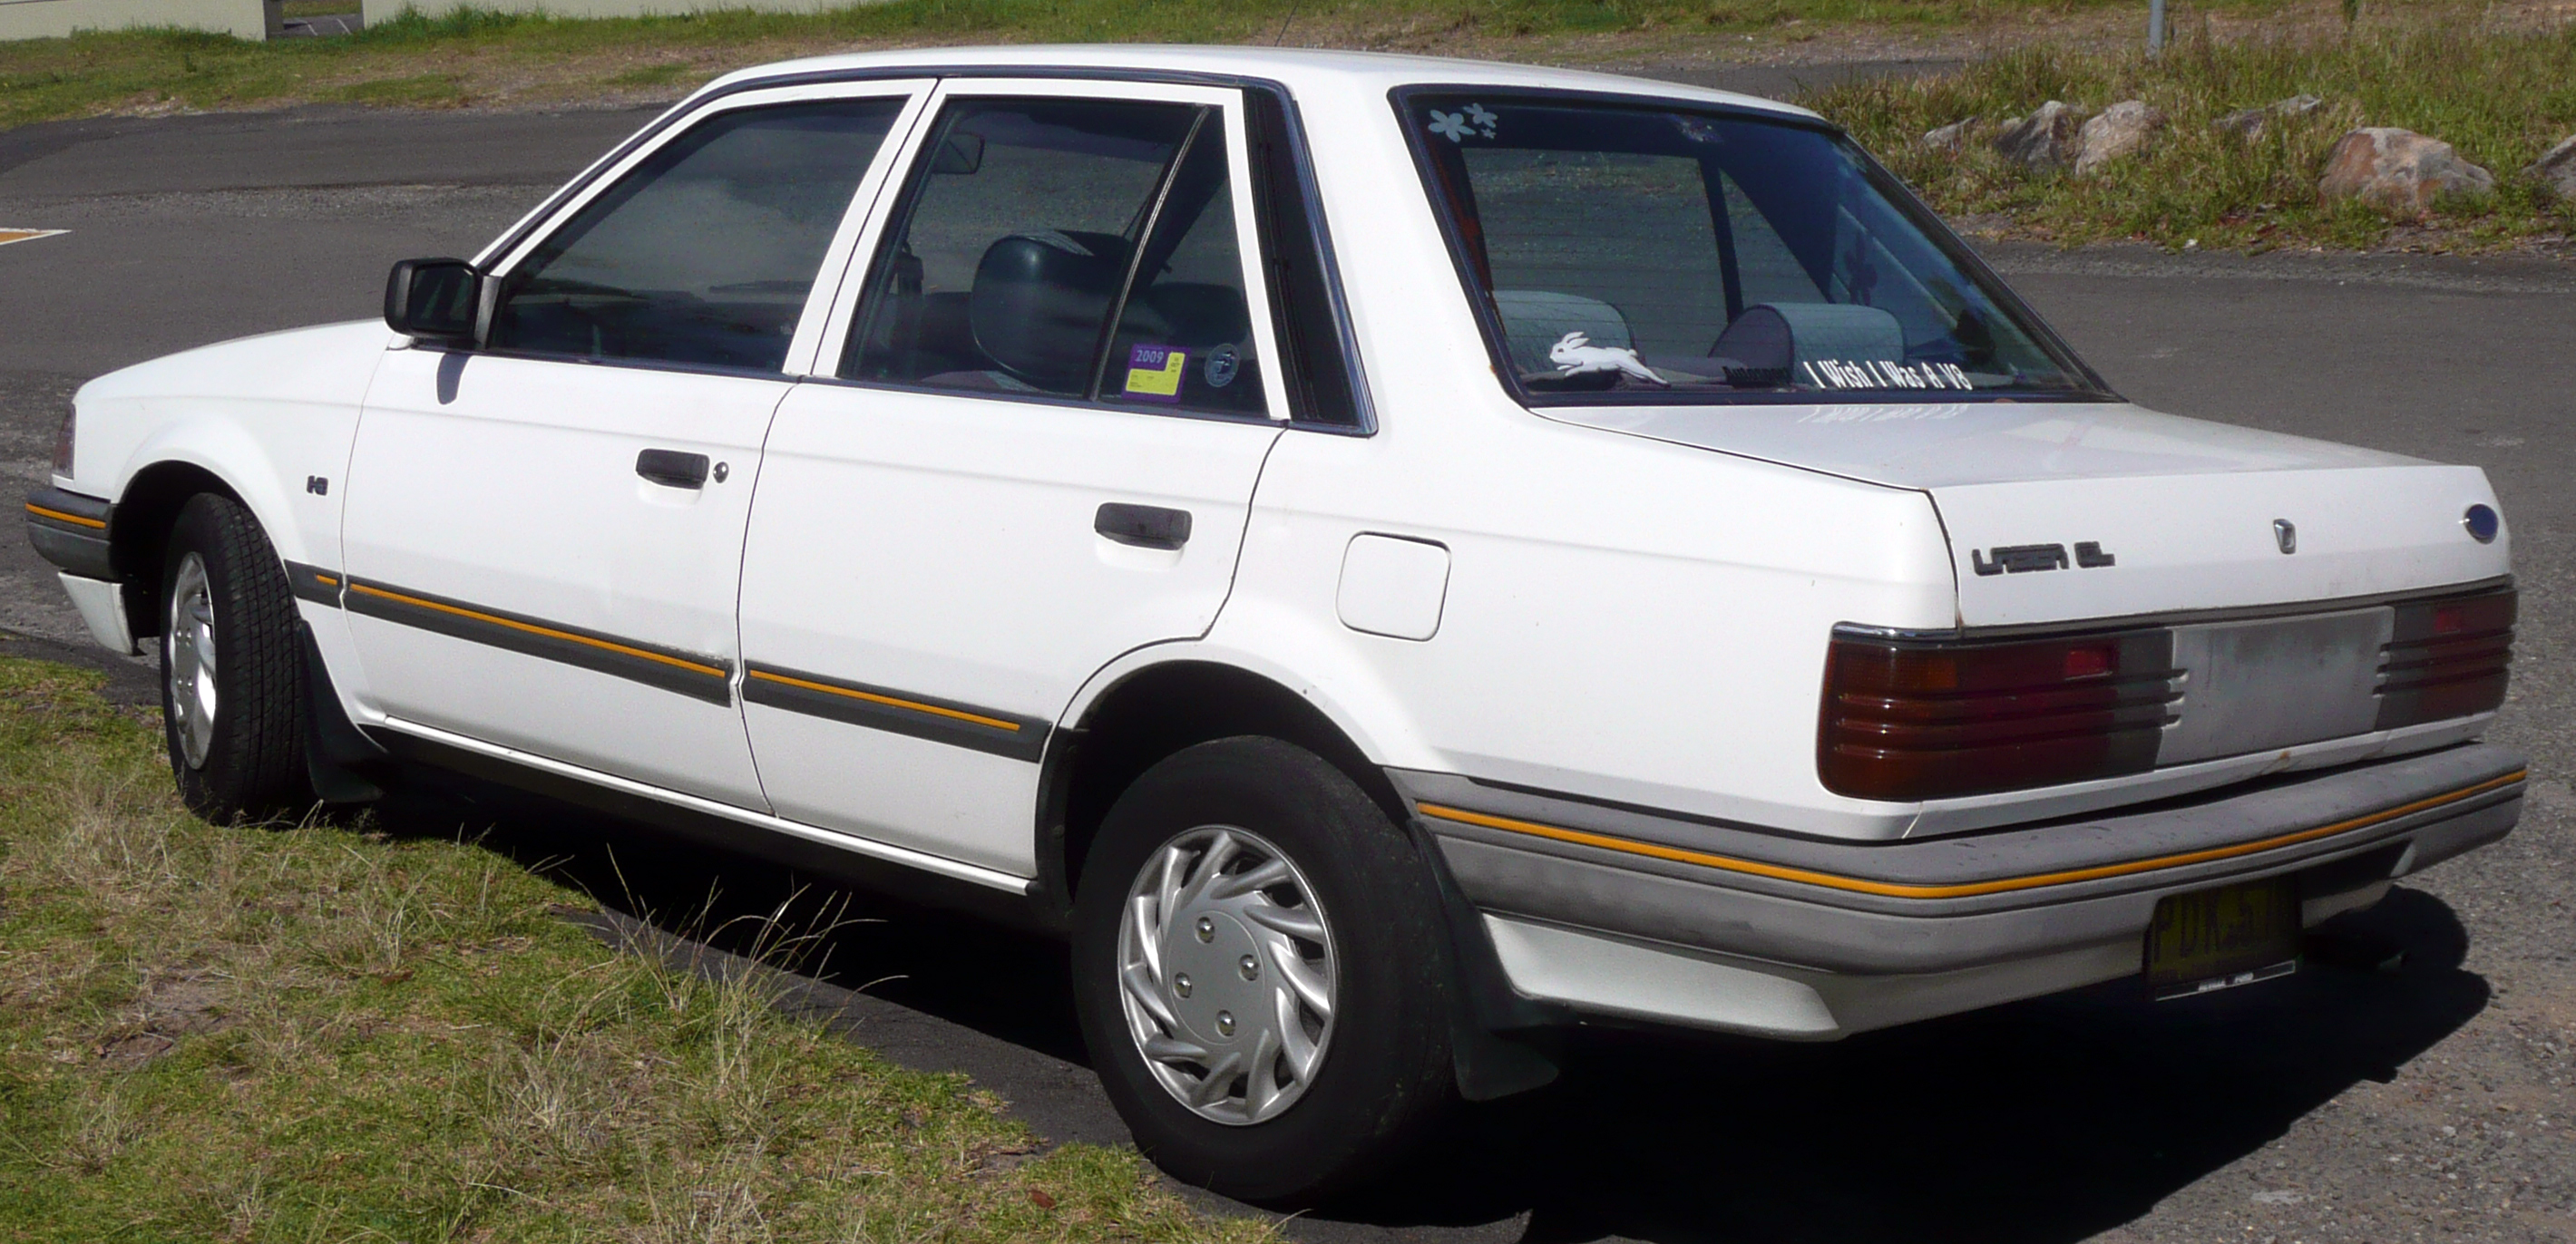 1987 Ford Laser Photos, Informations, Articles ...